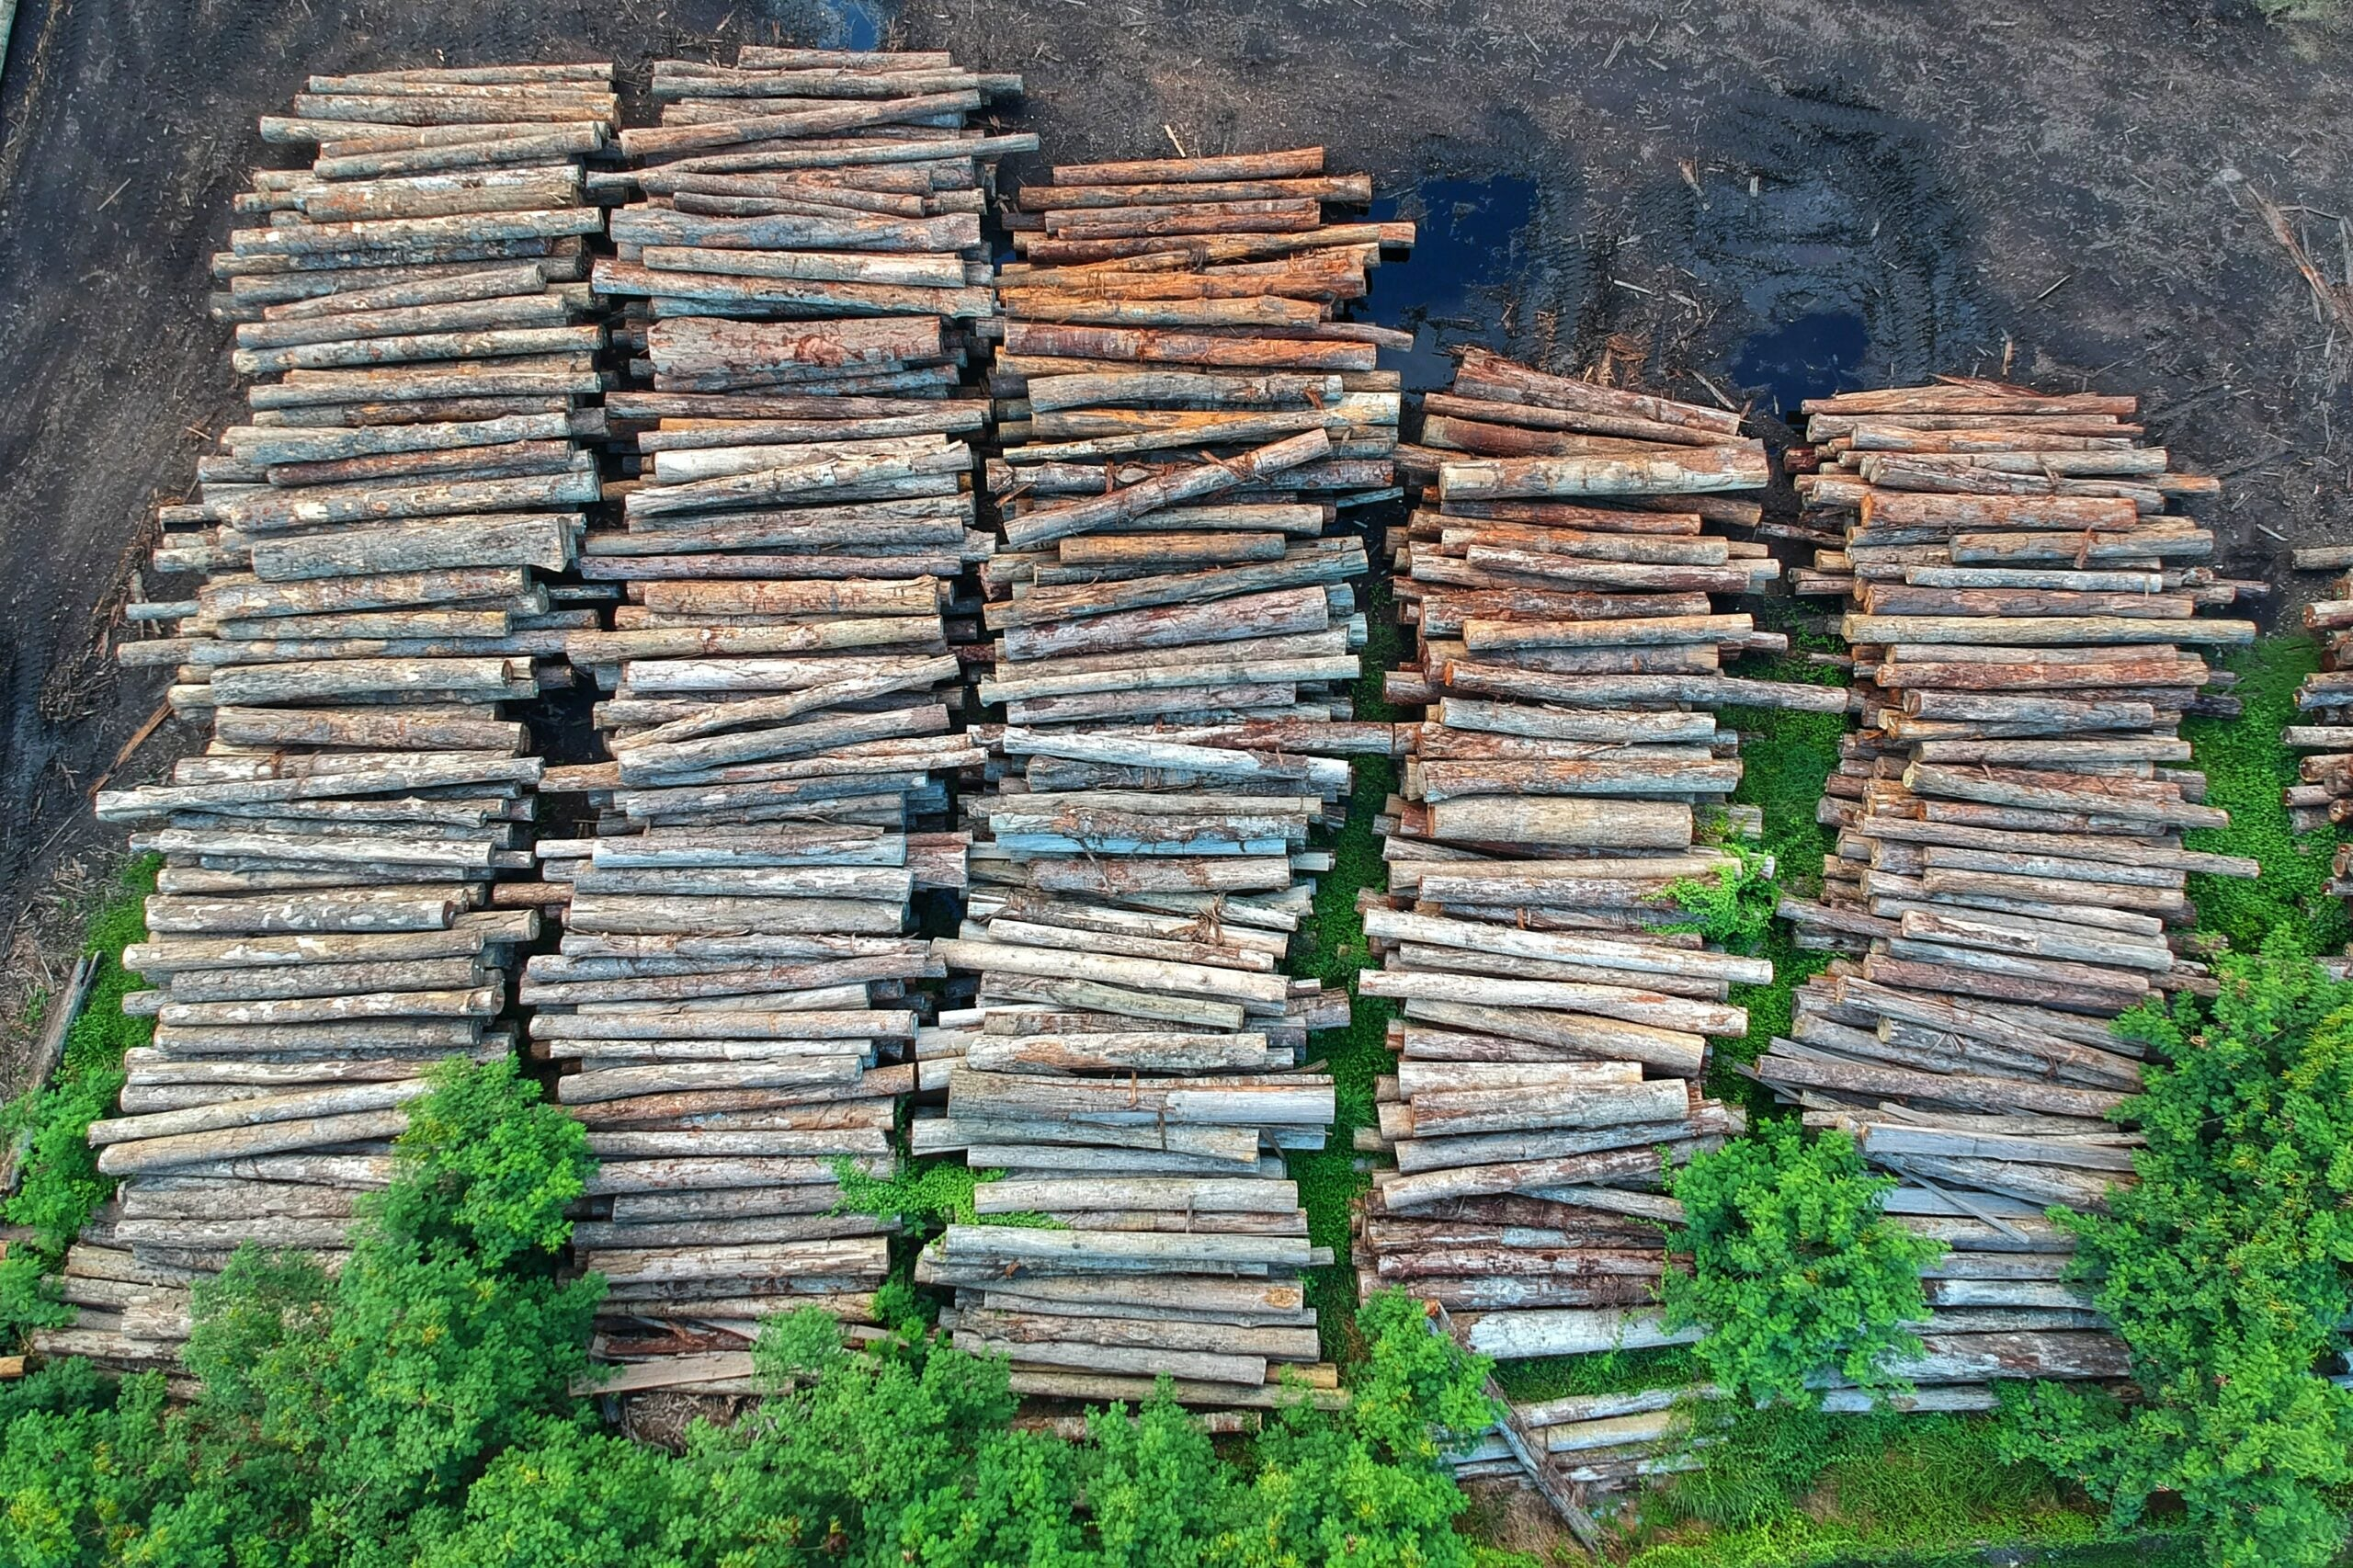 Gribble me this: What eats wood and poops clean energy?